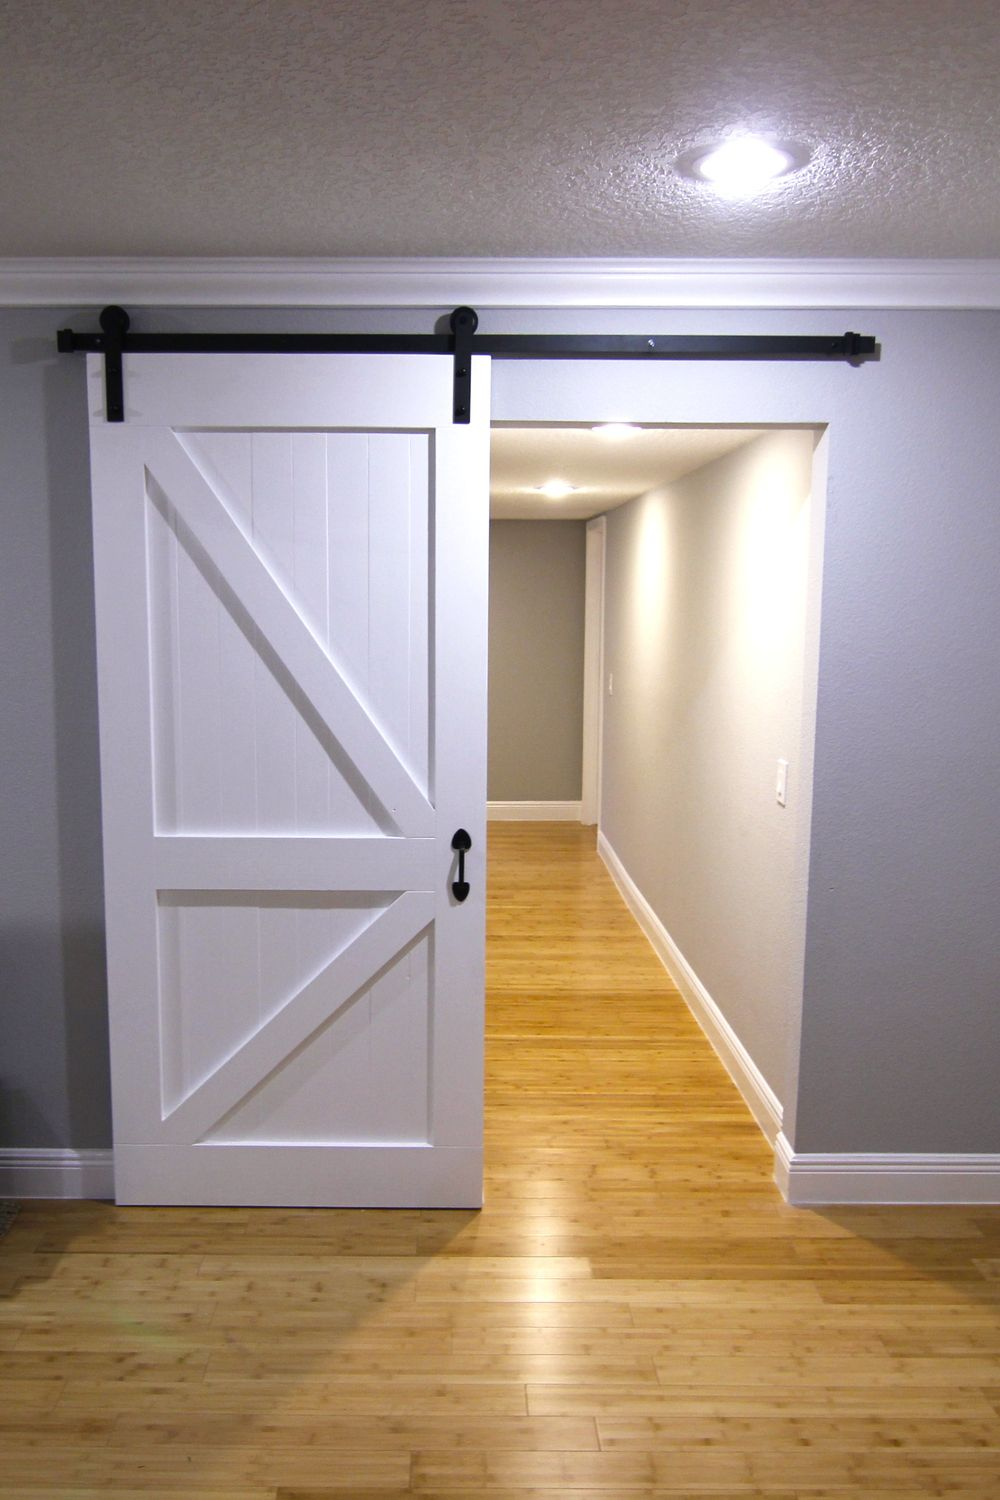 Sliding Barn Door Designs: Sliding Barn Door Painted White, Solid Wood Construction